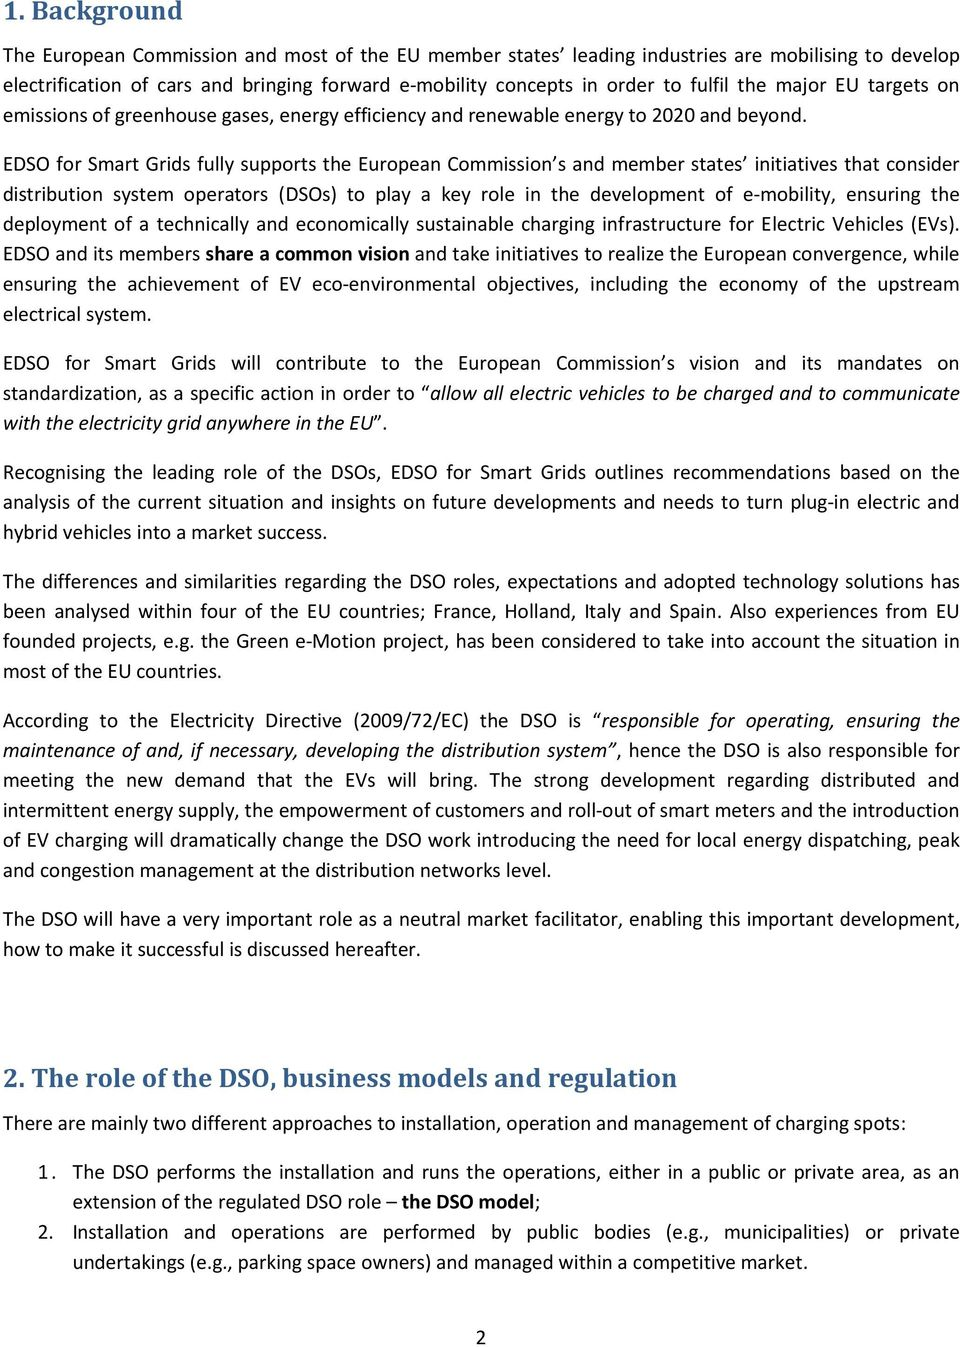 EDSO for Smart Grids fully supports the European Commission s and member states initiatives that consider distribution system operators (DSOs) to play a key role in the development of e-mobility,